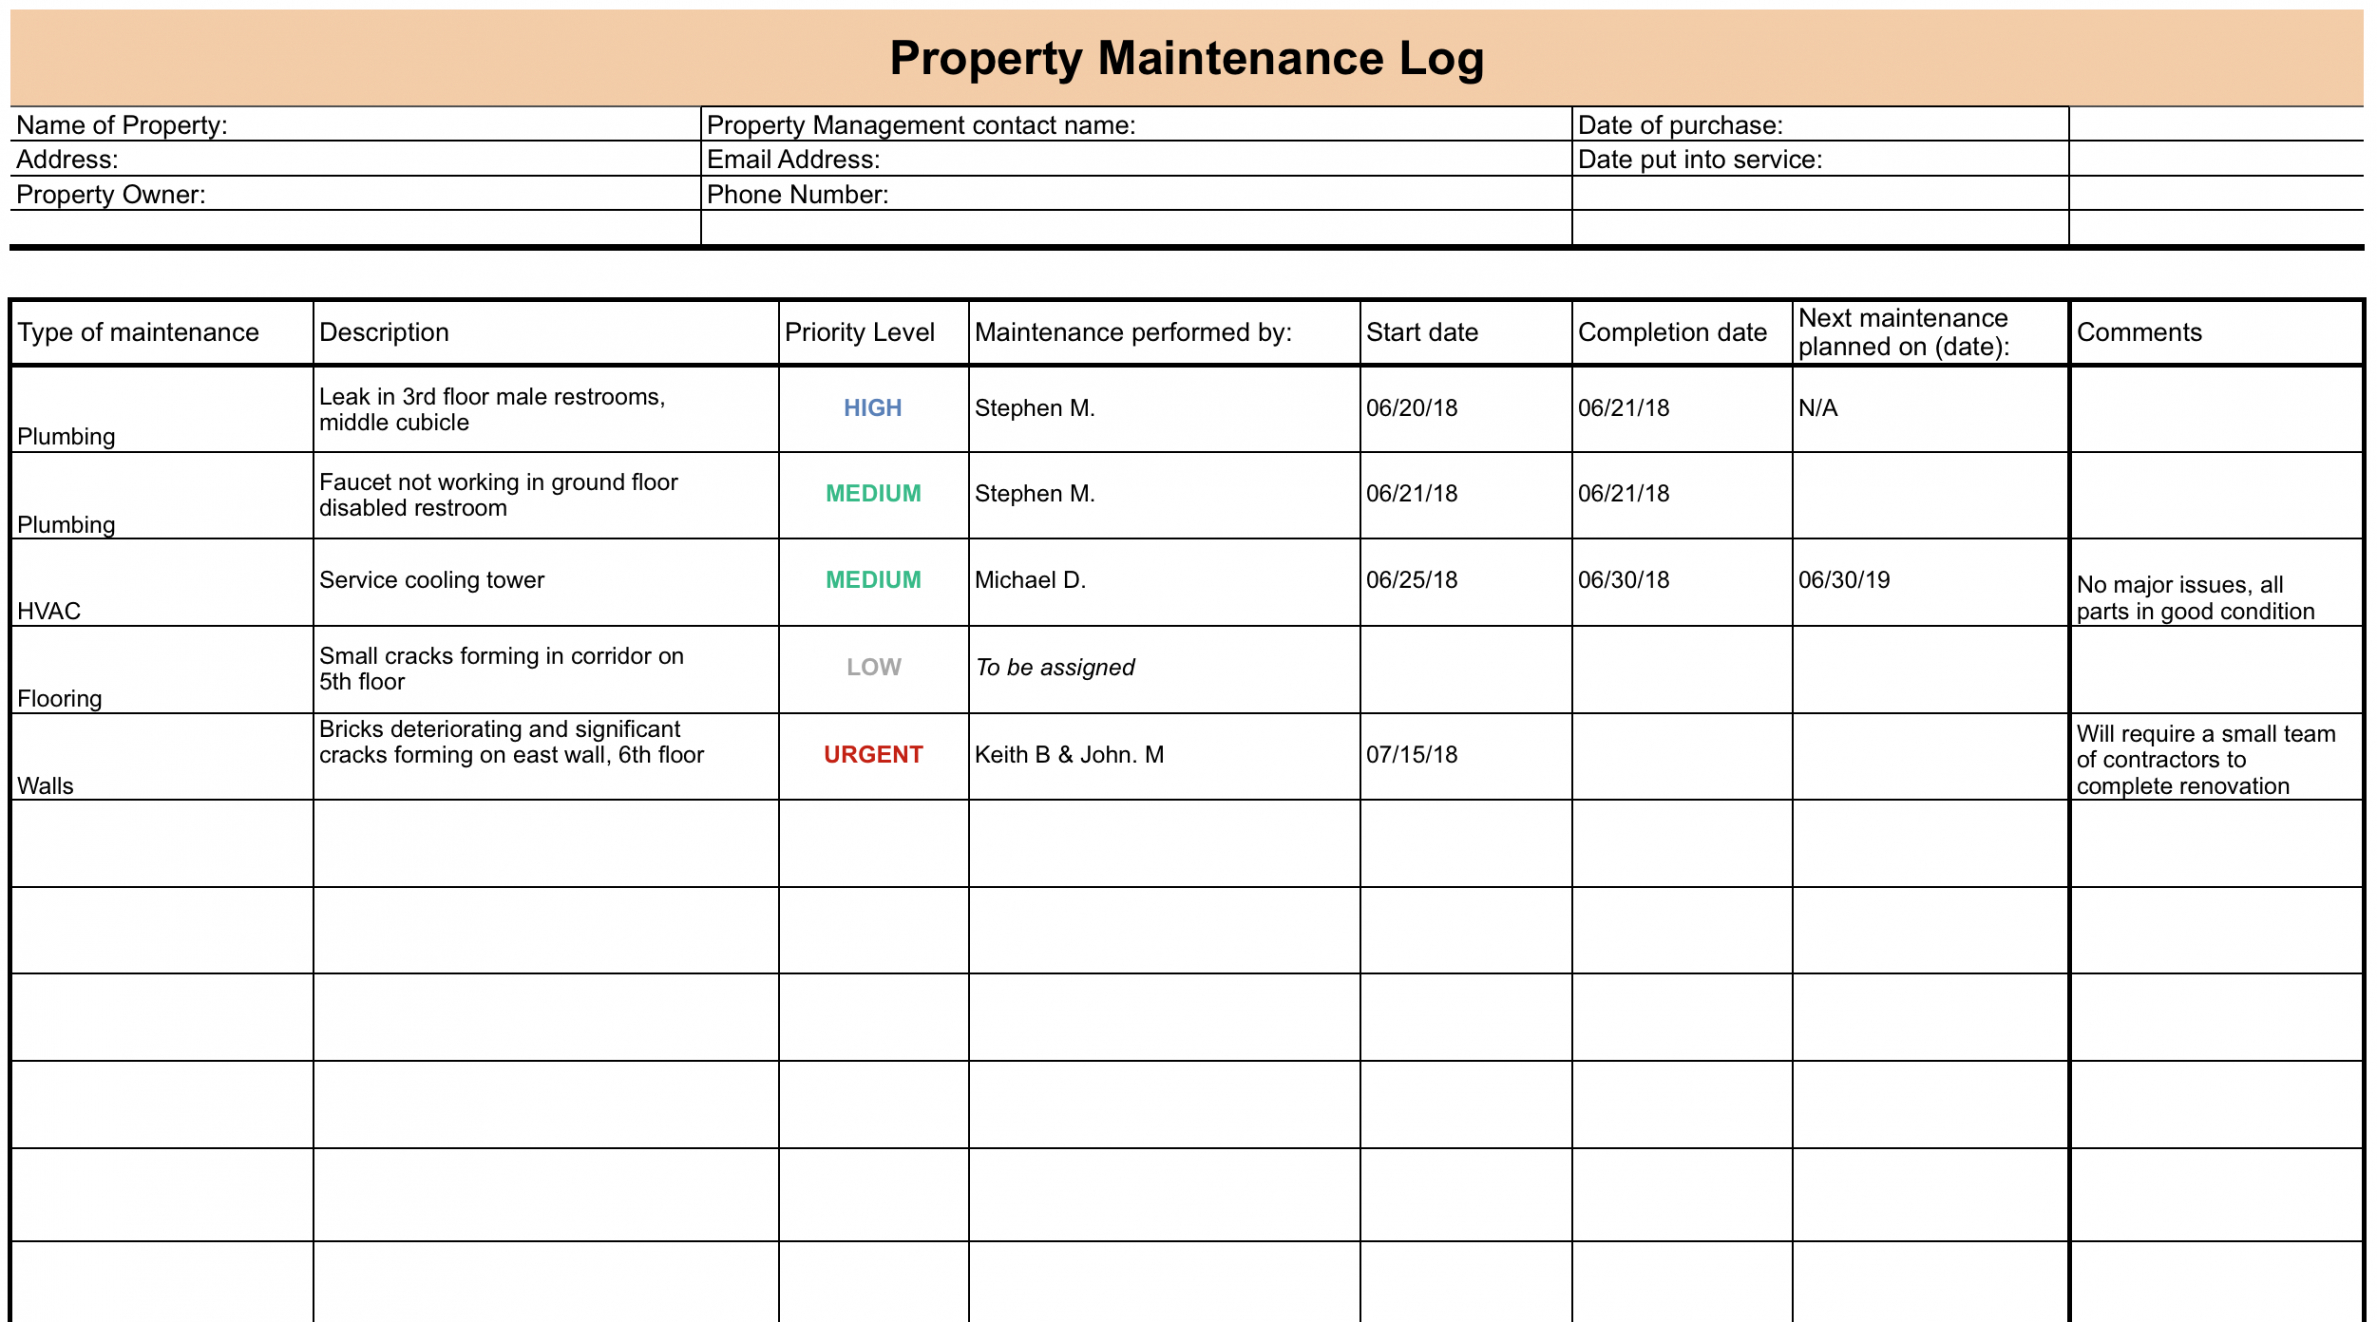 free maintenance log setup checklist  process street plumbing checklist template example